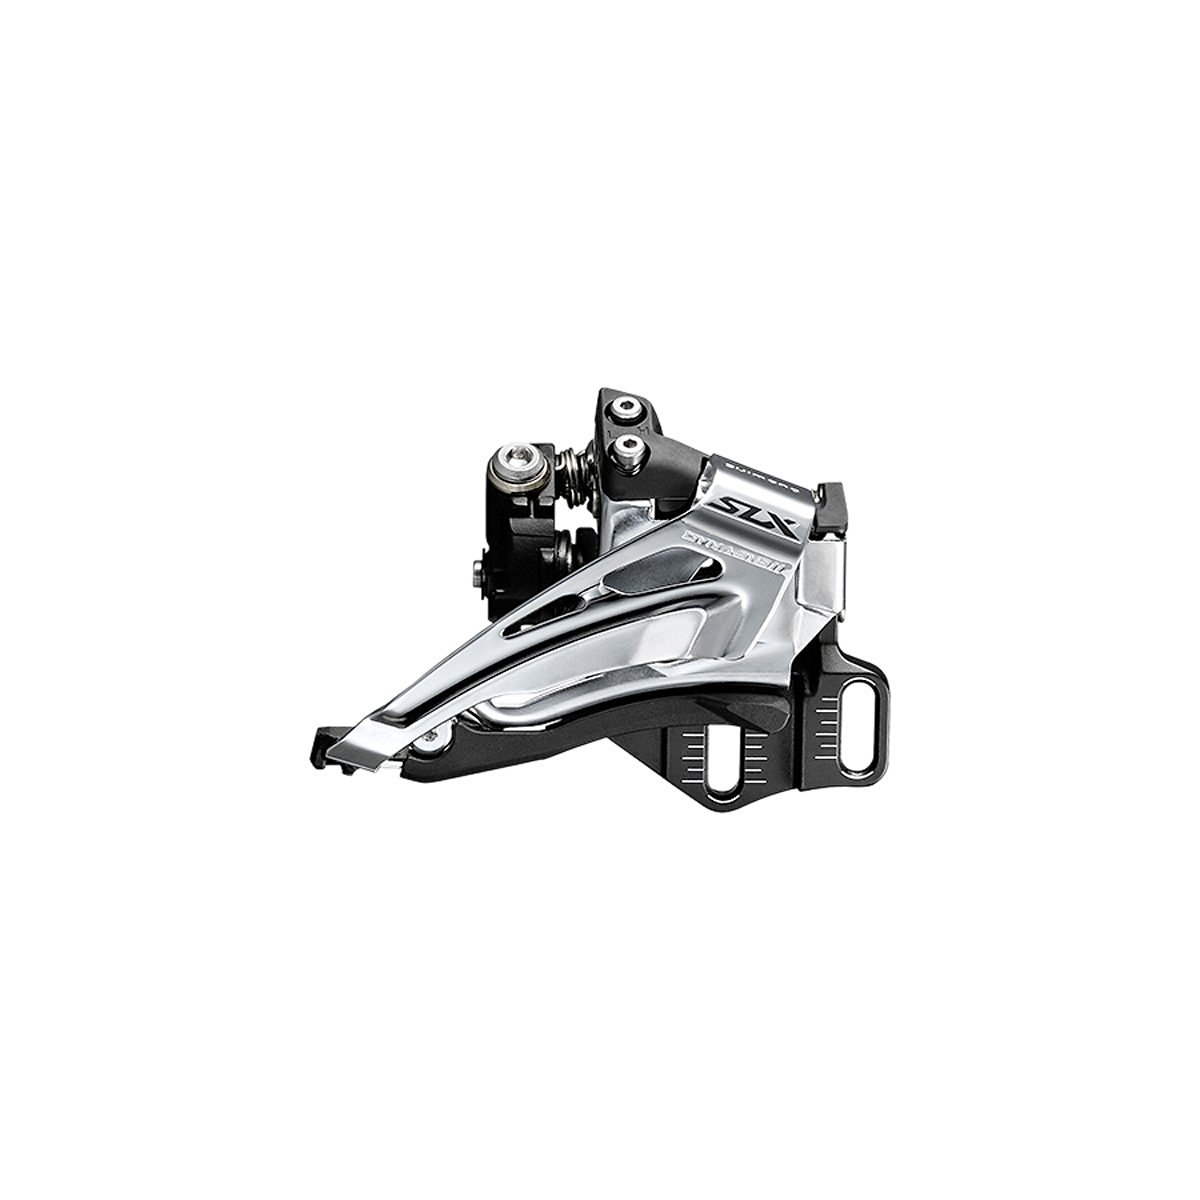 Cheap How To Adjust Shimano Slx Front Derailleur, find How